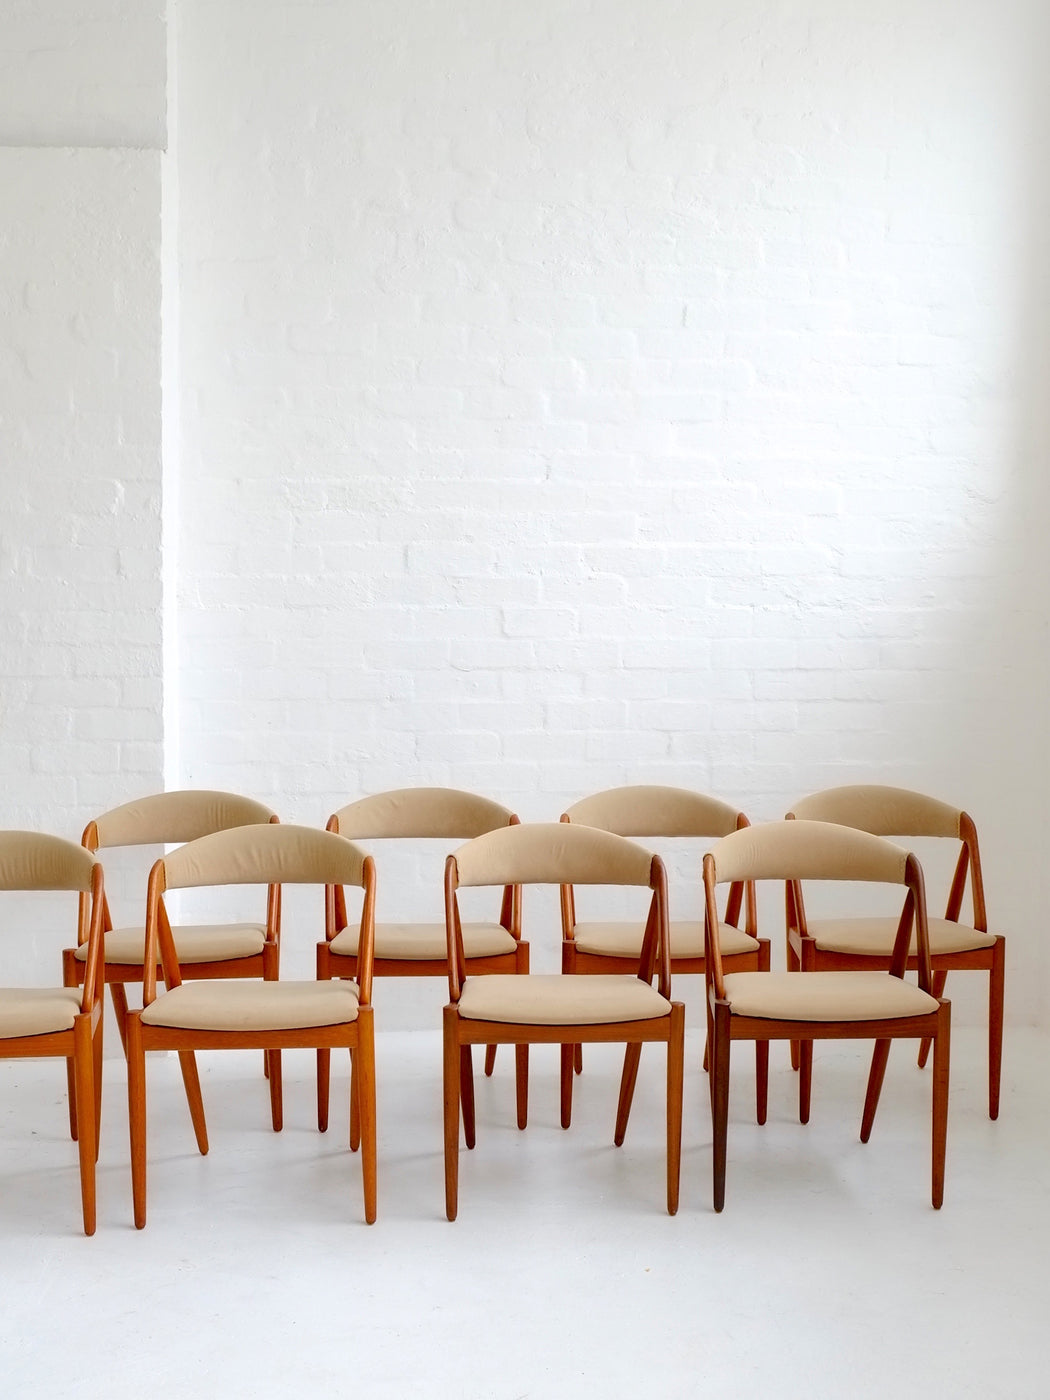 Kai Kristiansen 'Model 31' Chairs